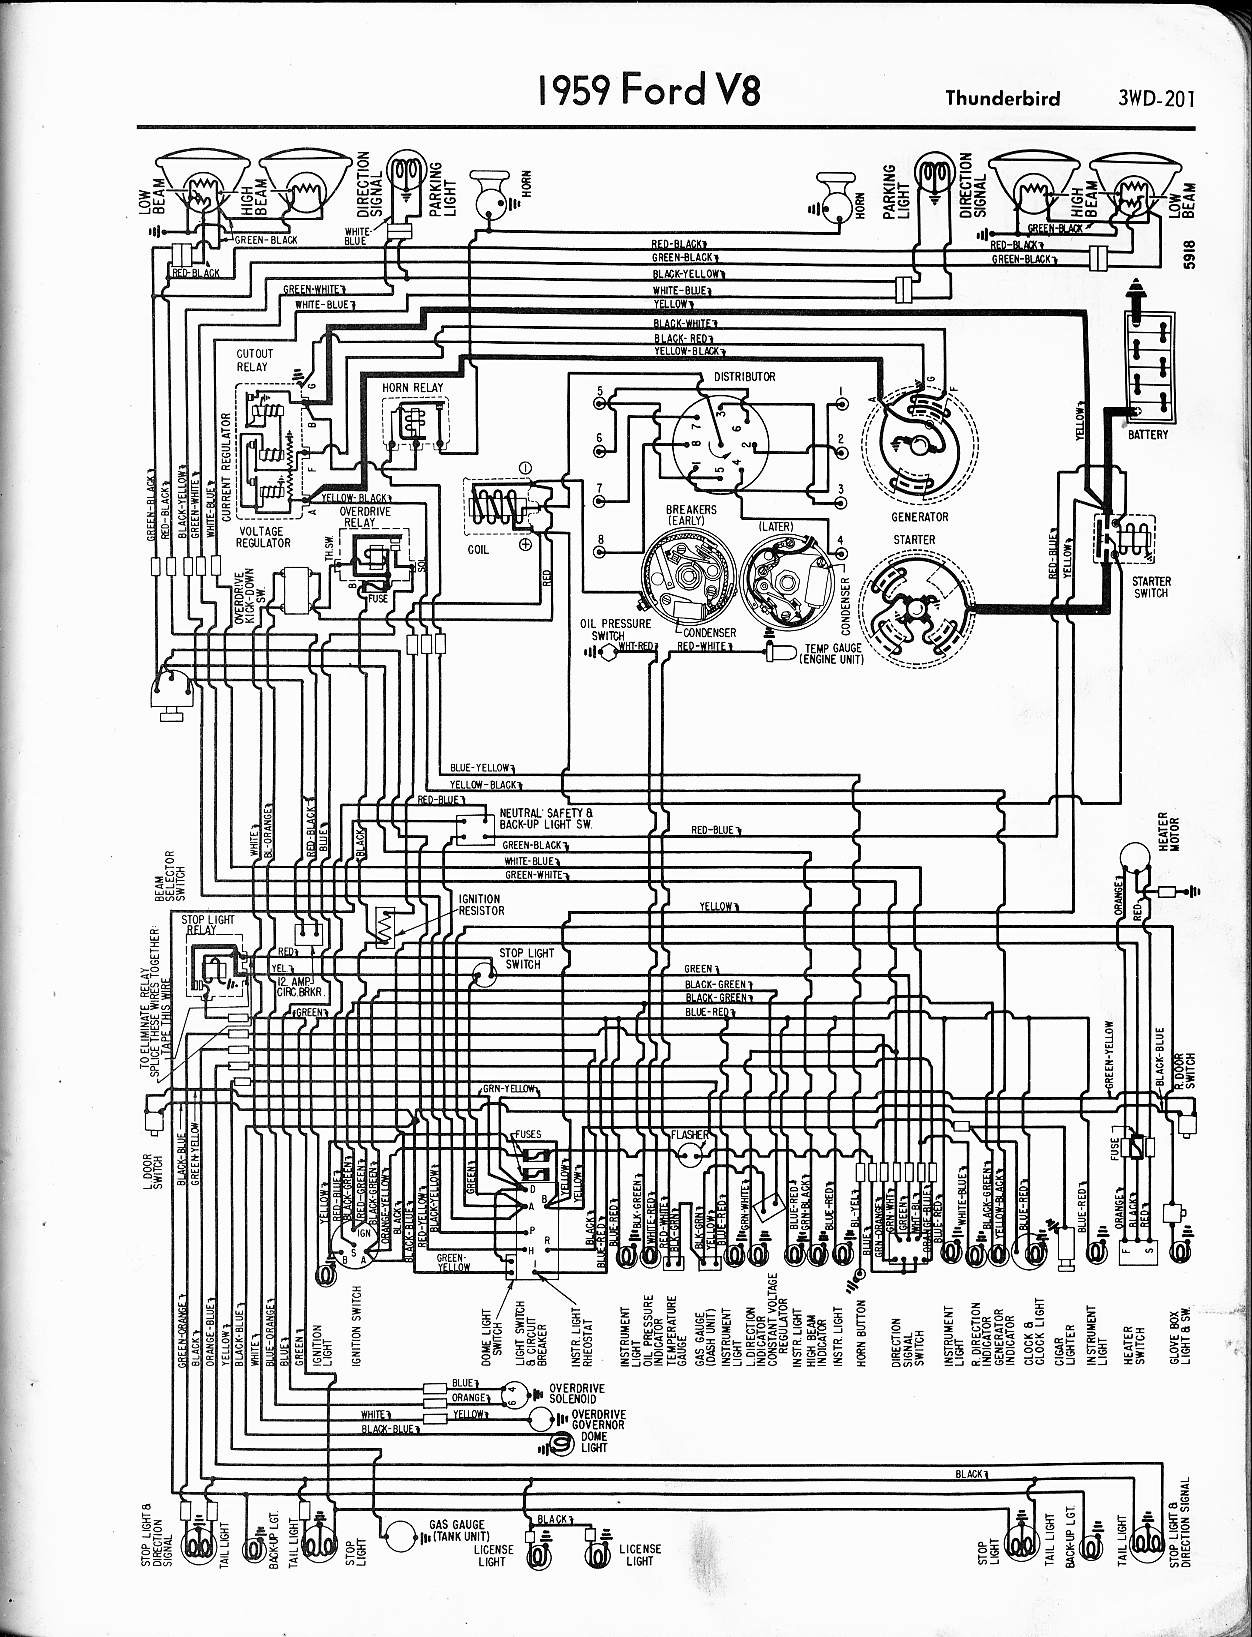 Freightliner Wiring Diagrams Free Beautiful Free Car Wiring Diagrams Everything You Need to Of Freightliner Wiring Diagrams Free